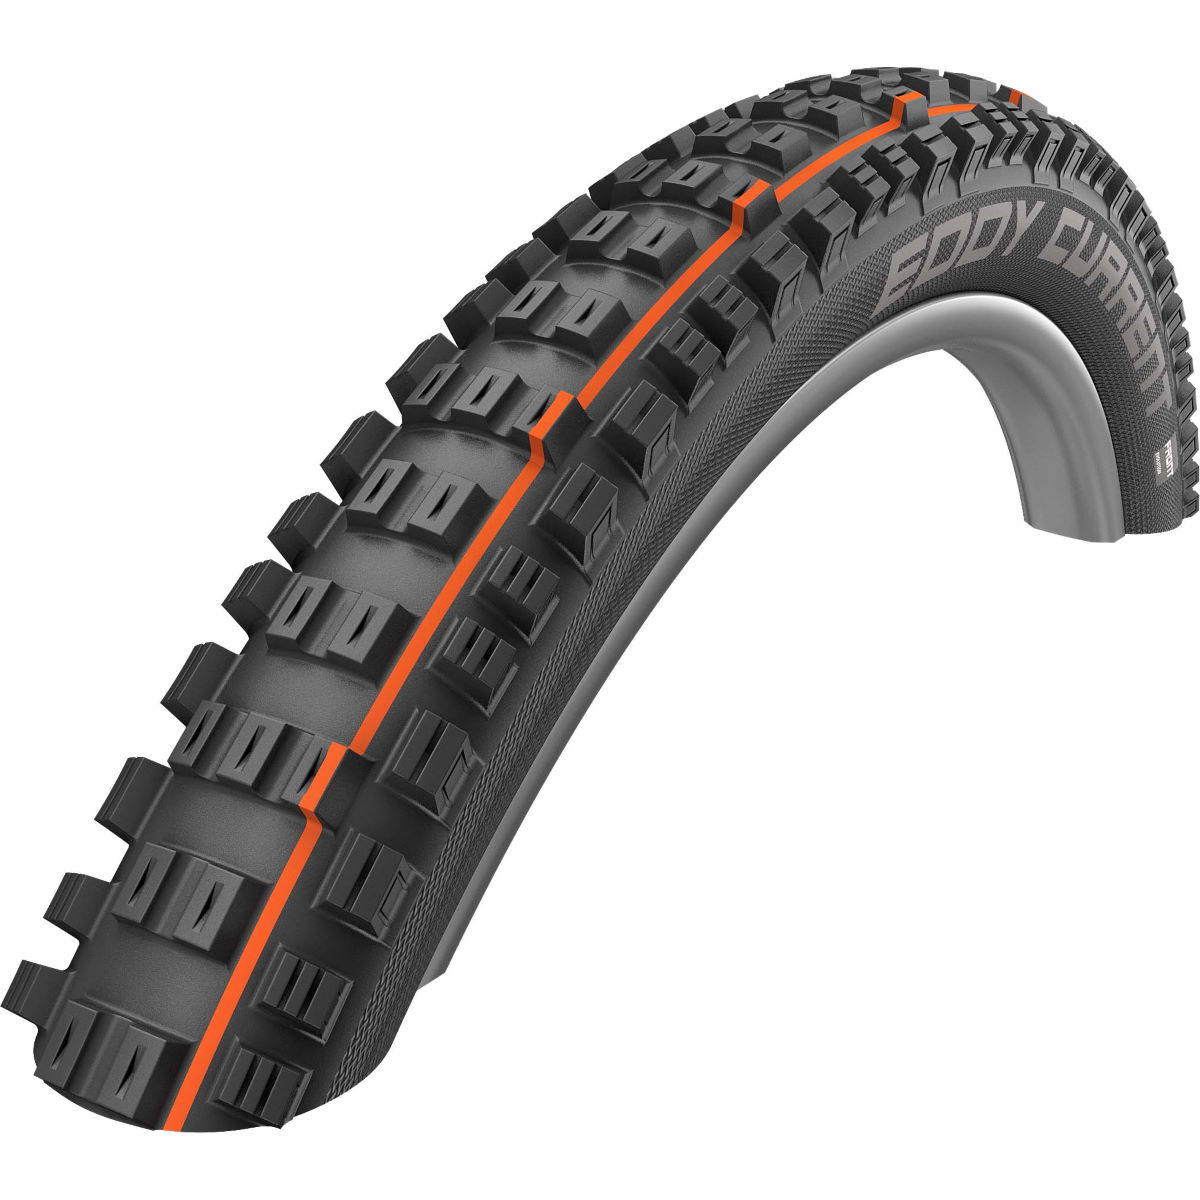 Schwalbe Schwalbe Eddy Current Evo Tubeless Front Tyre   Tyres